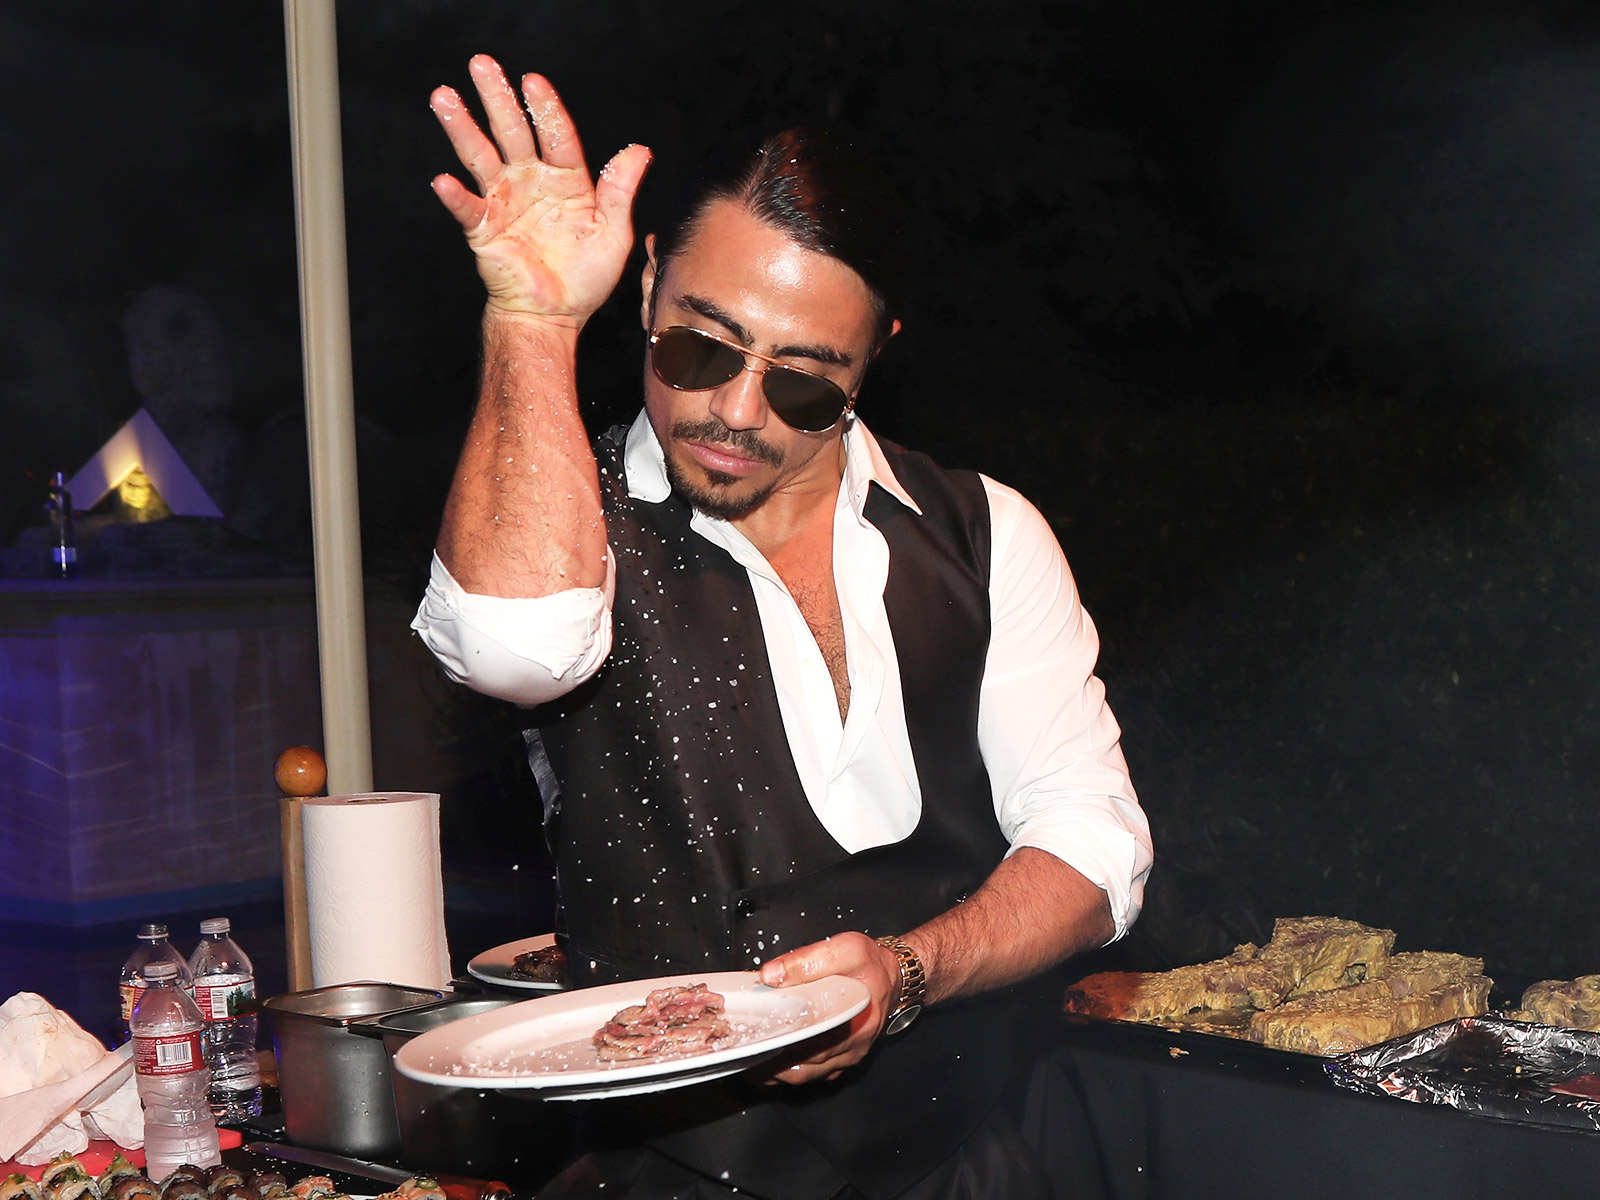 salt bae goes too far with sliced cheese